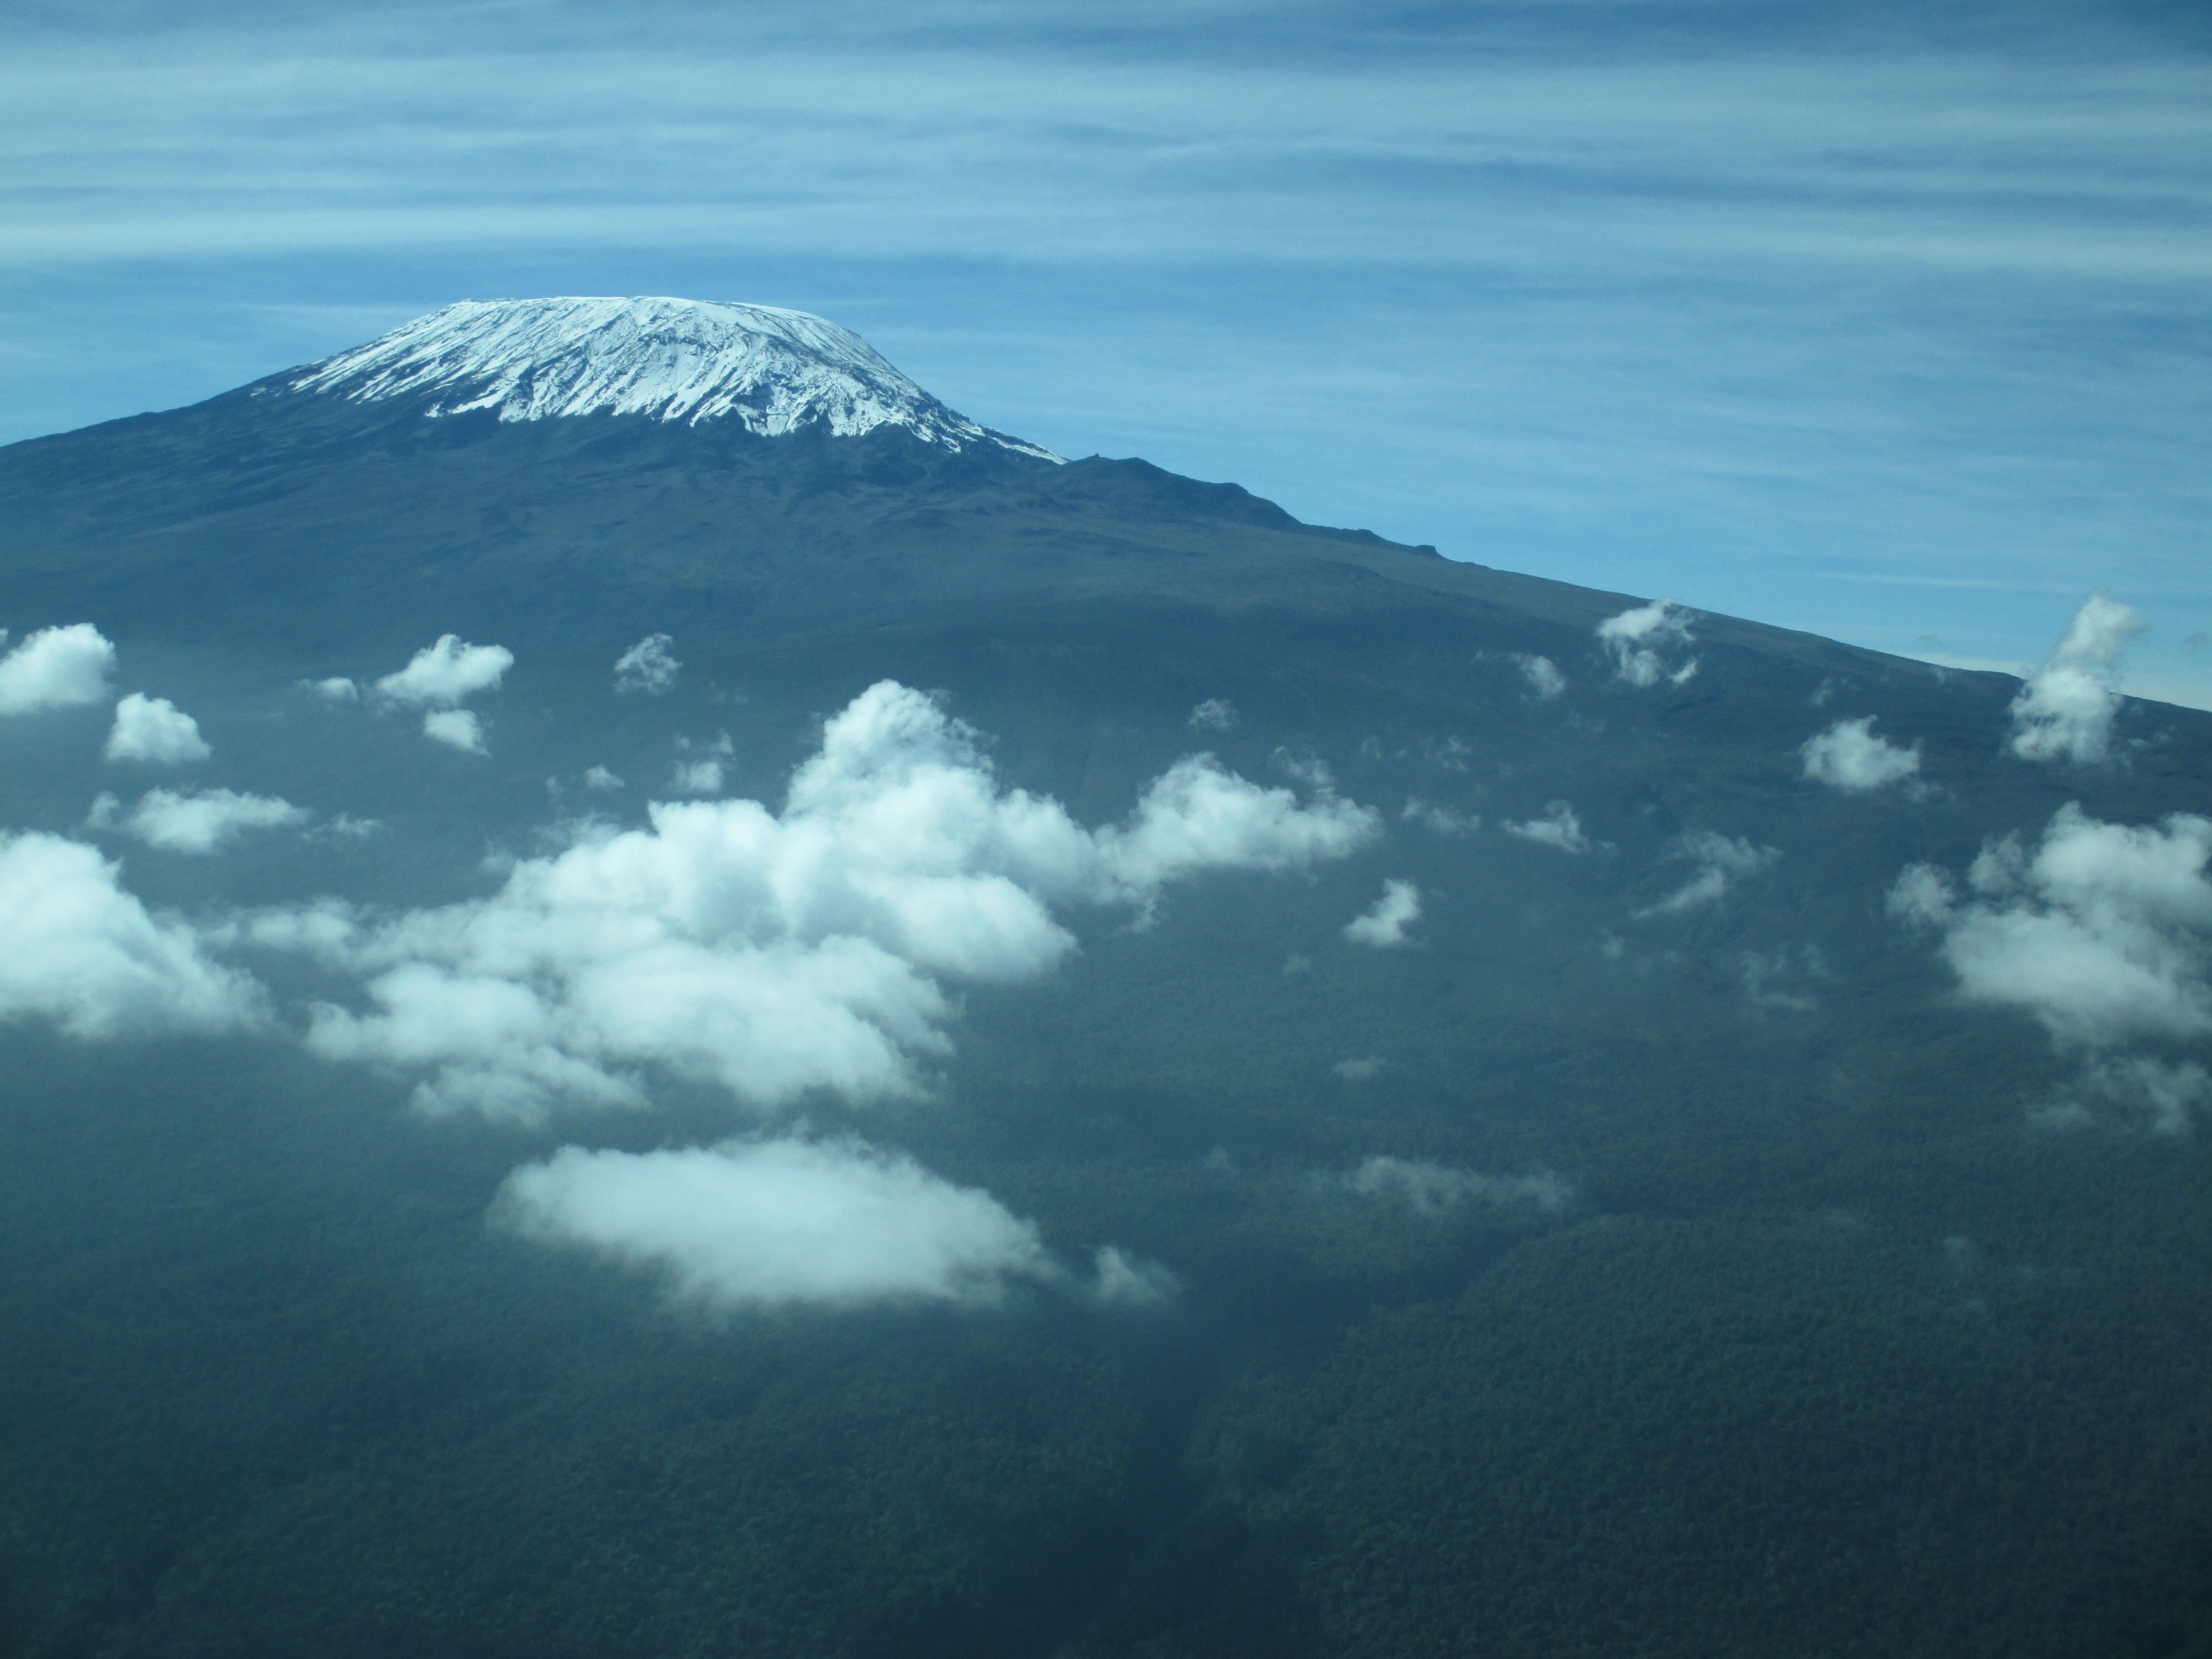 Mount Kilimanjaro in Kenya from a wee plane :-) photo by P.H.Sassoon